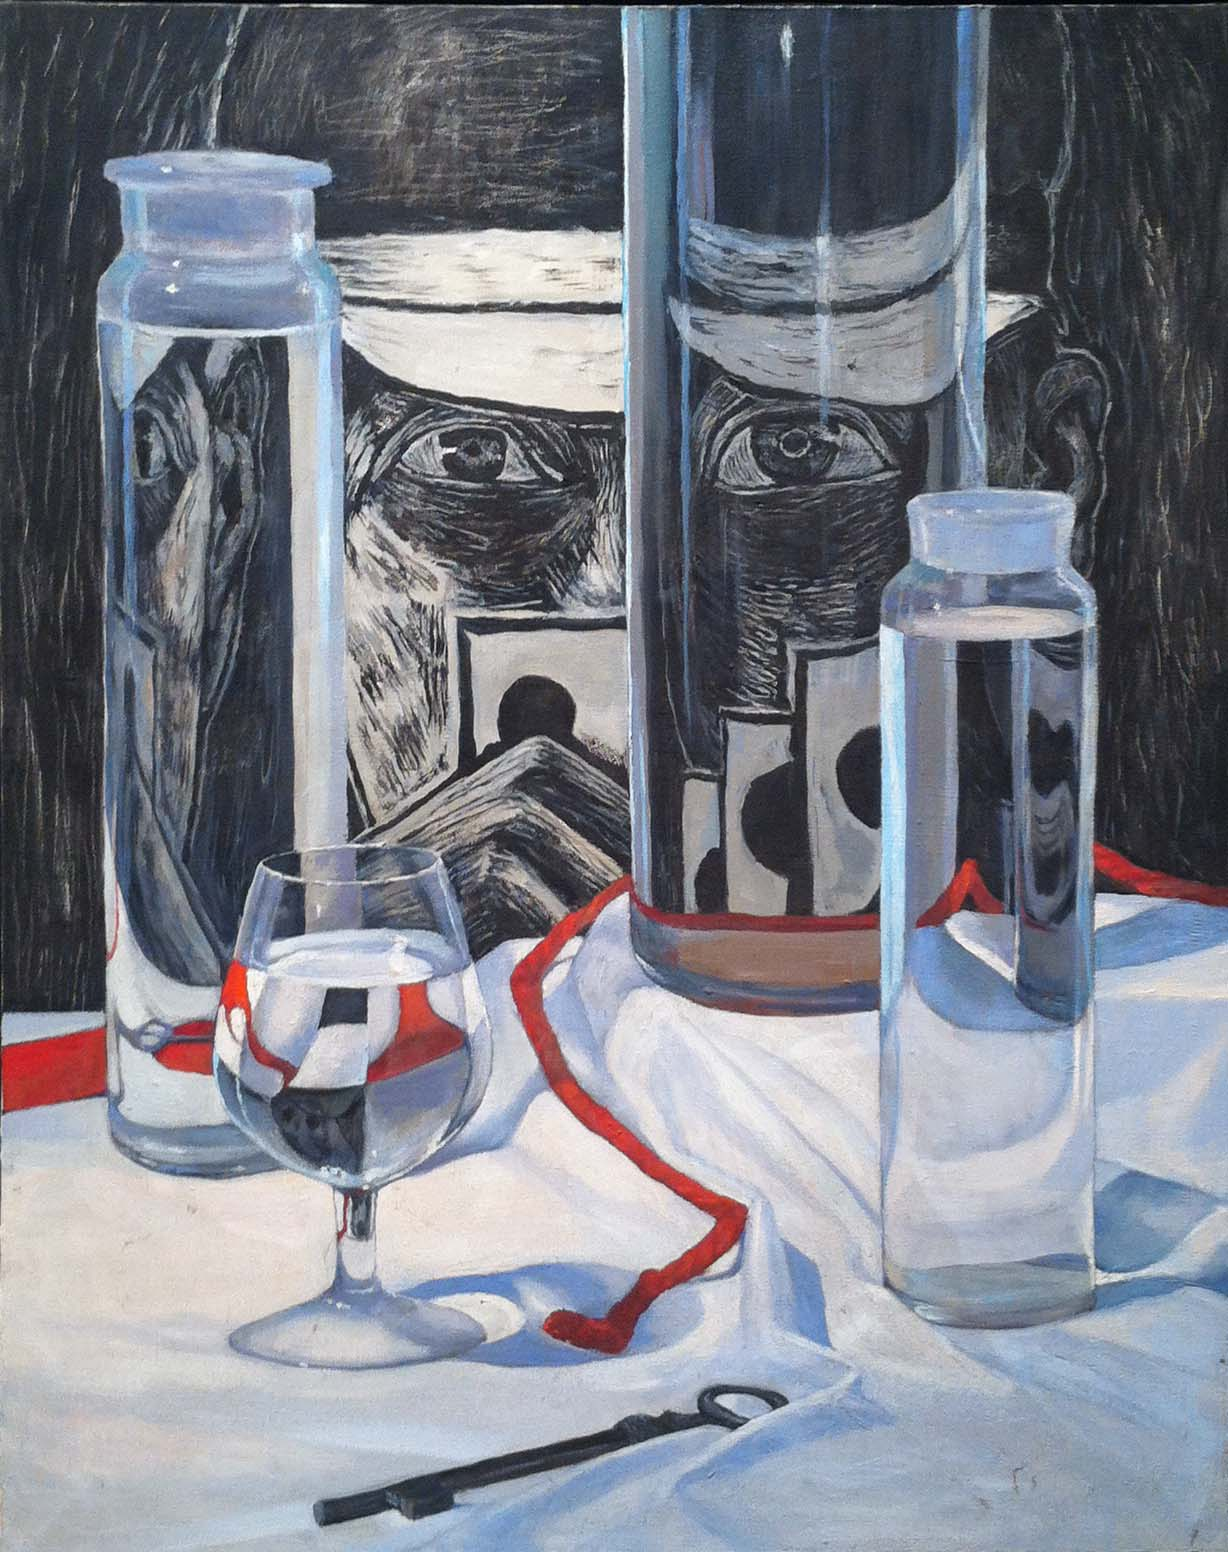 Reflected Card Player, 1987 oil on canvas, 30 x 24 inches